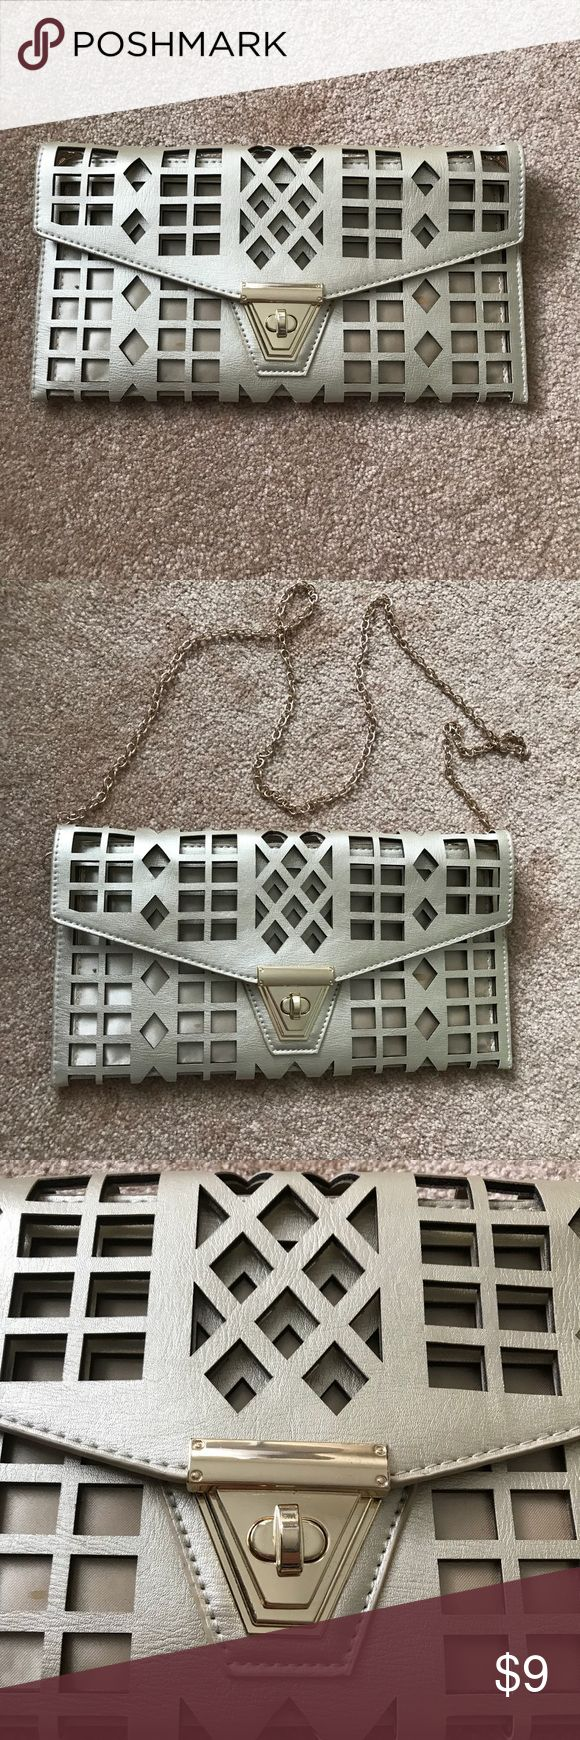 """MMS (Target 🎯) large gold cutout clutch MMS gold clutch. Laser cut cutouts. Large size - apprx 6""""x12"""". Removable gold chain strap. Beautiful clutch. Has small marks on lining (see last 3 photos). MMS Design Studio Bags Clutches & Wristlets"""